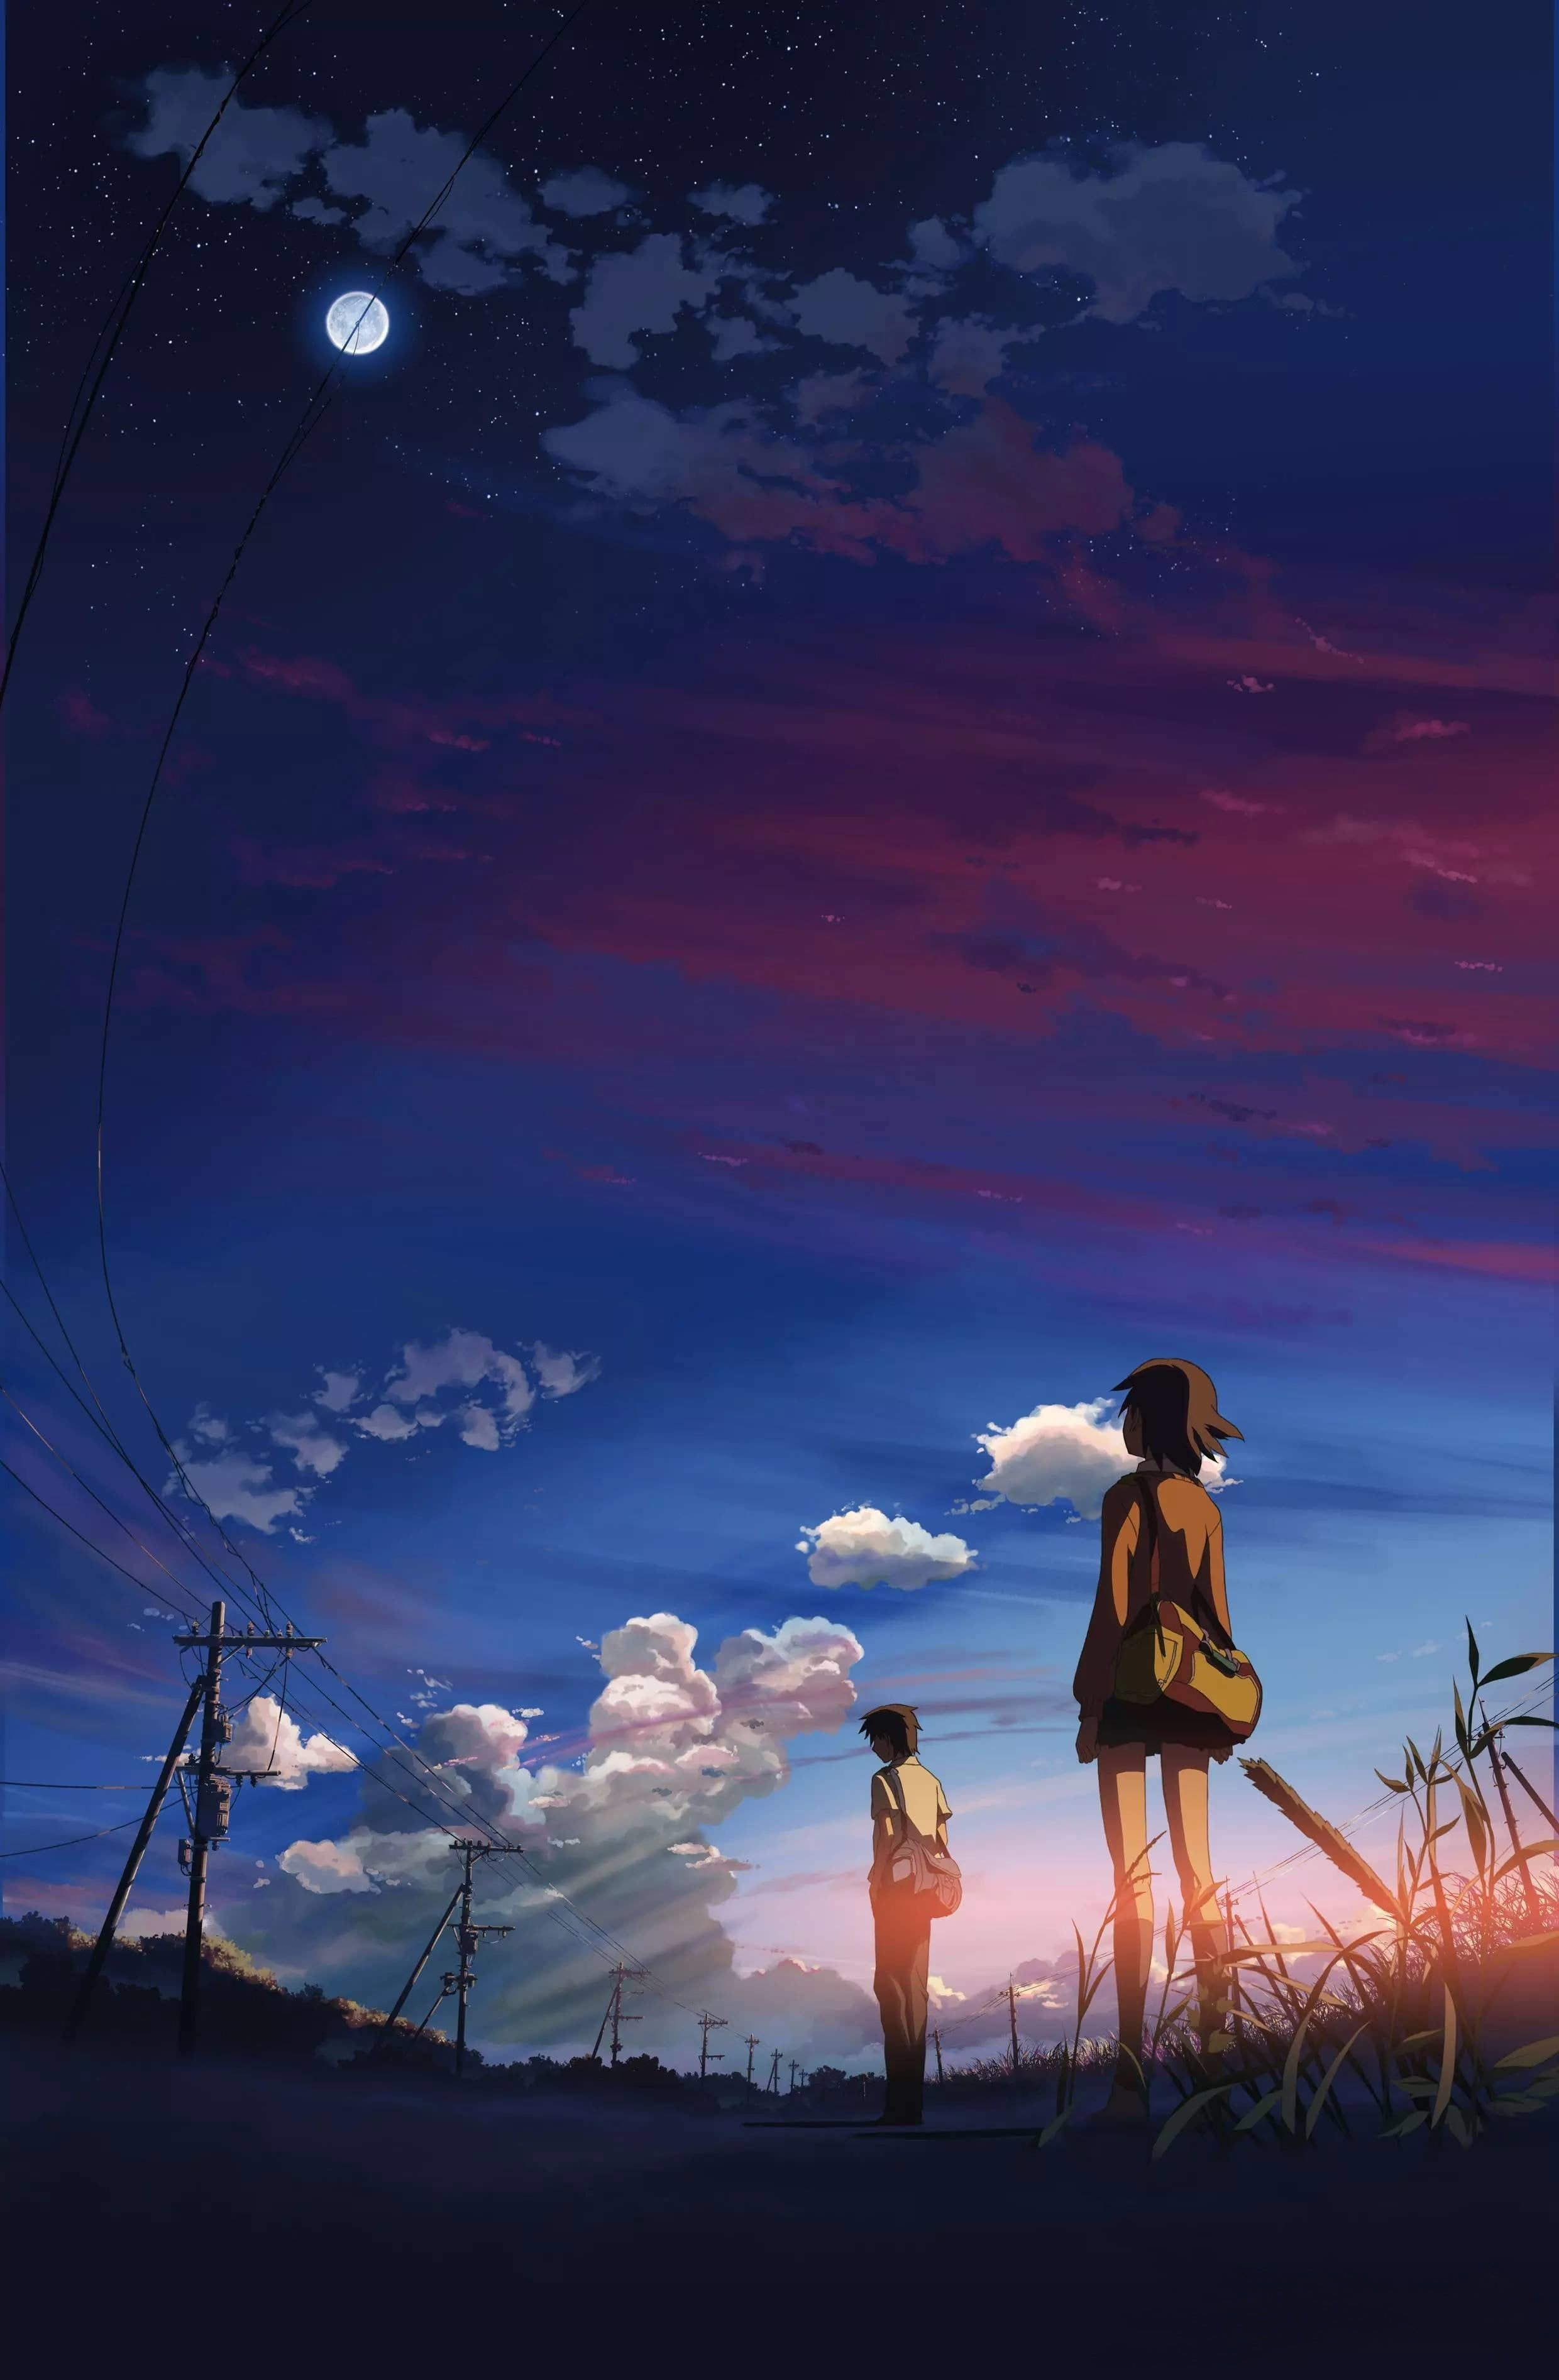 cartoon illustration 5 Centimeters Per Second anime